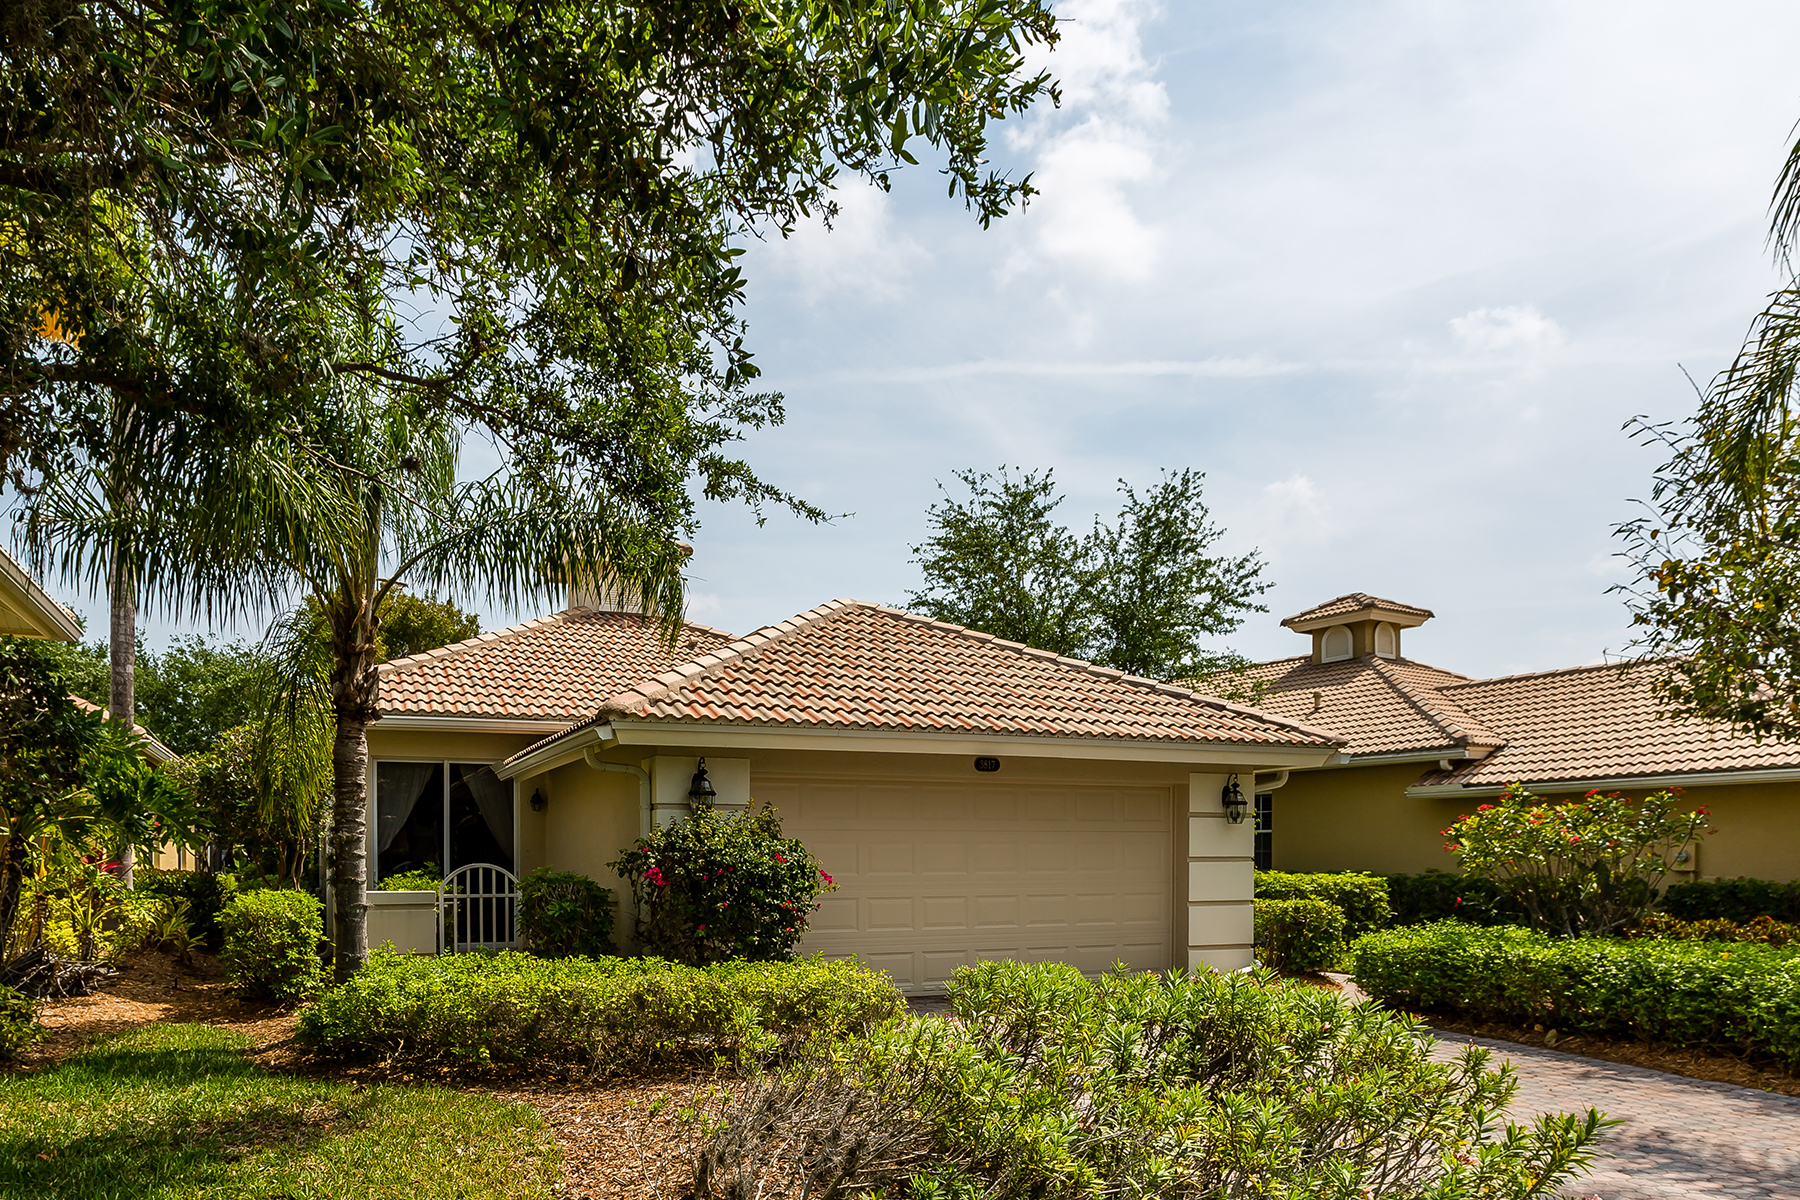 Single Family Home for Sale at FIDDLERS CREEK 3817 Cotton Green Path Dr Naples, Florida, 34114 United States